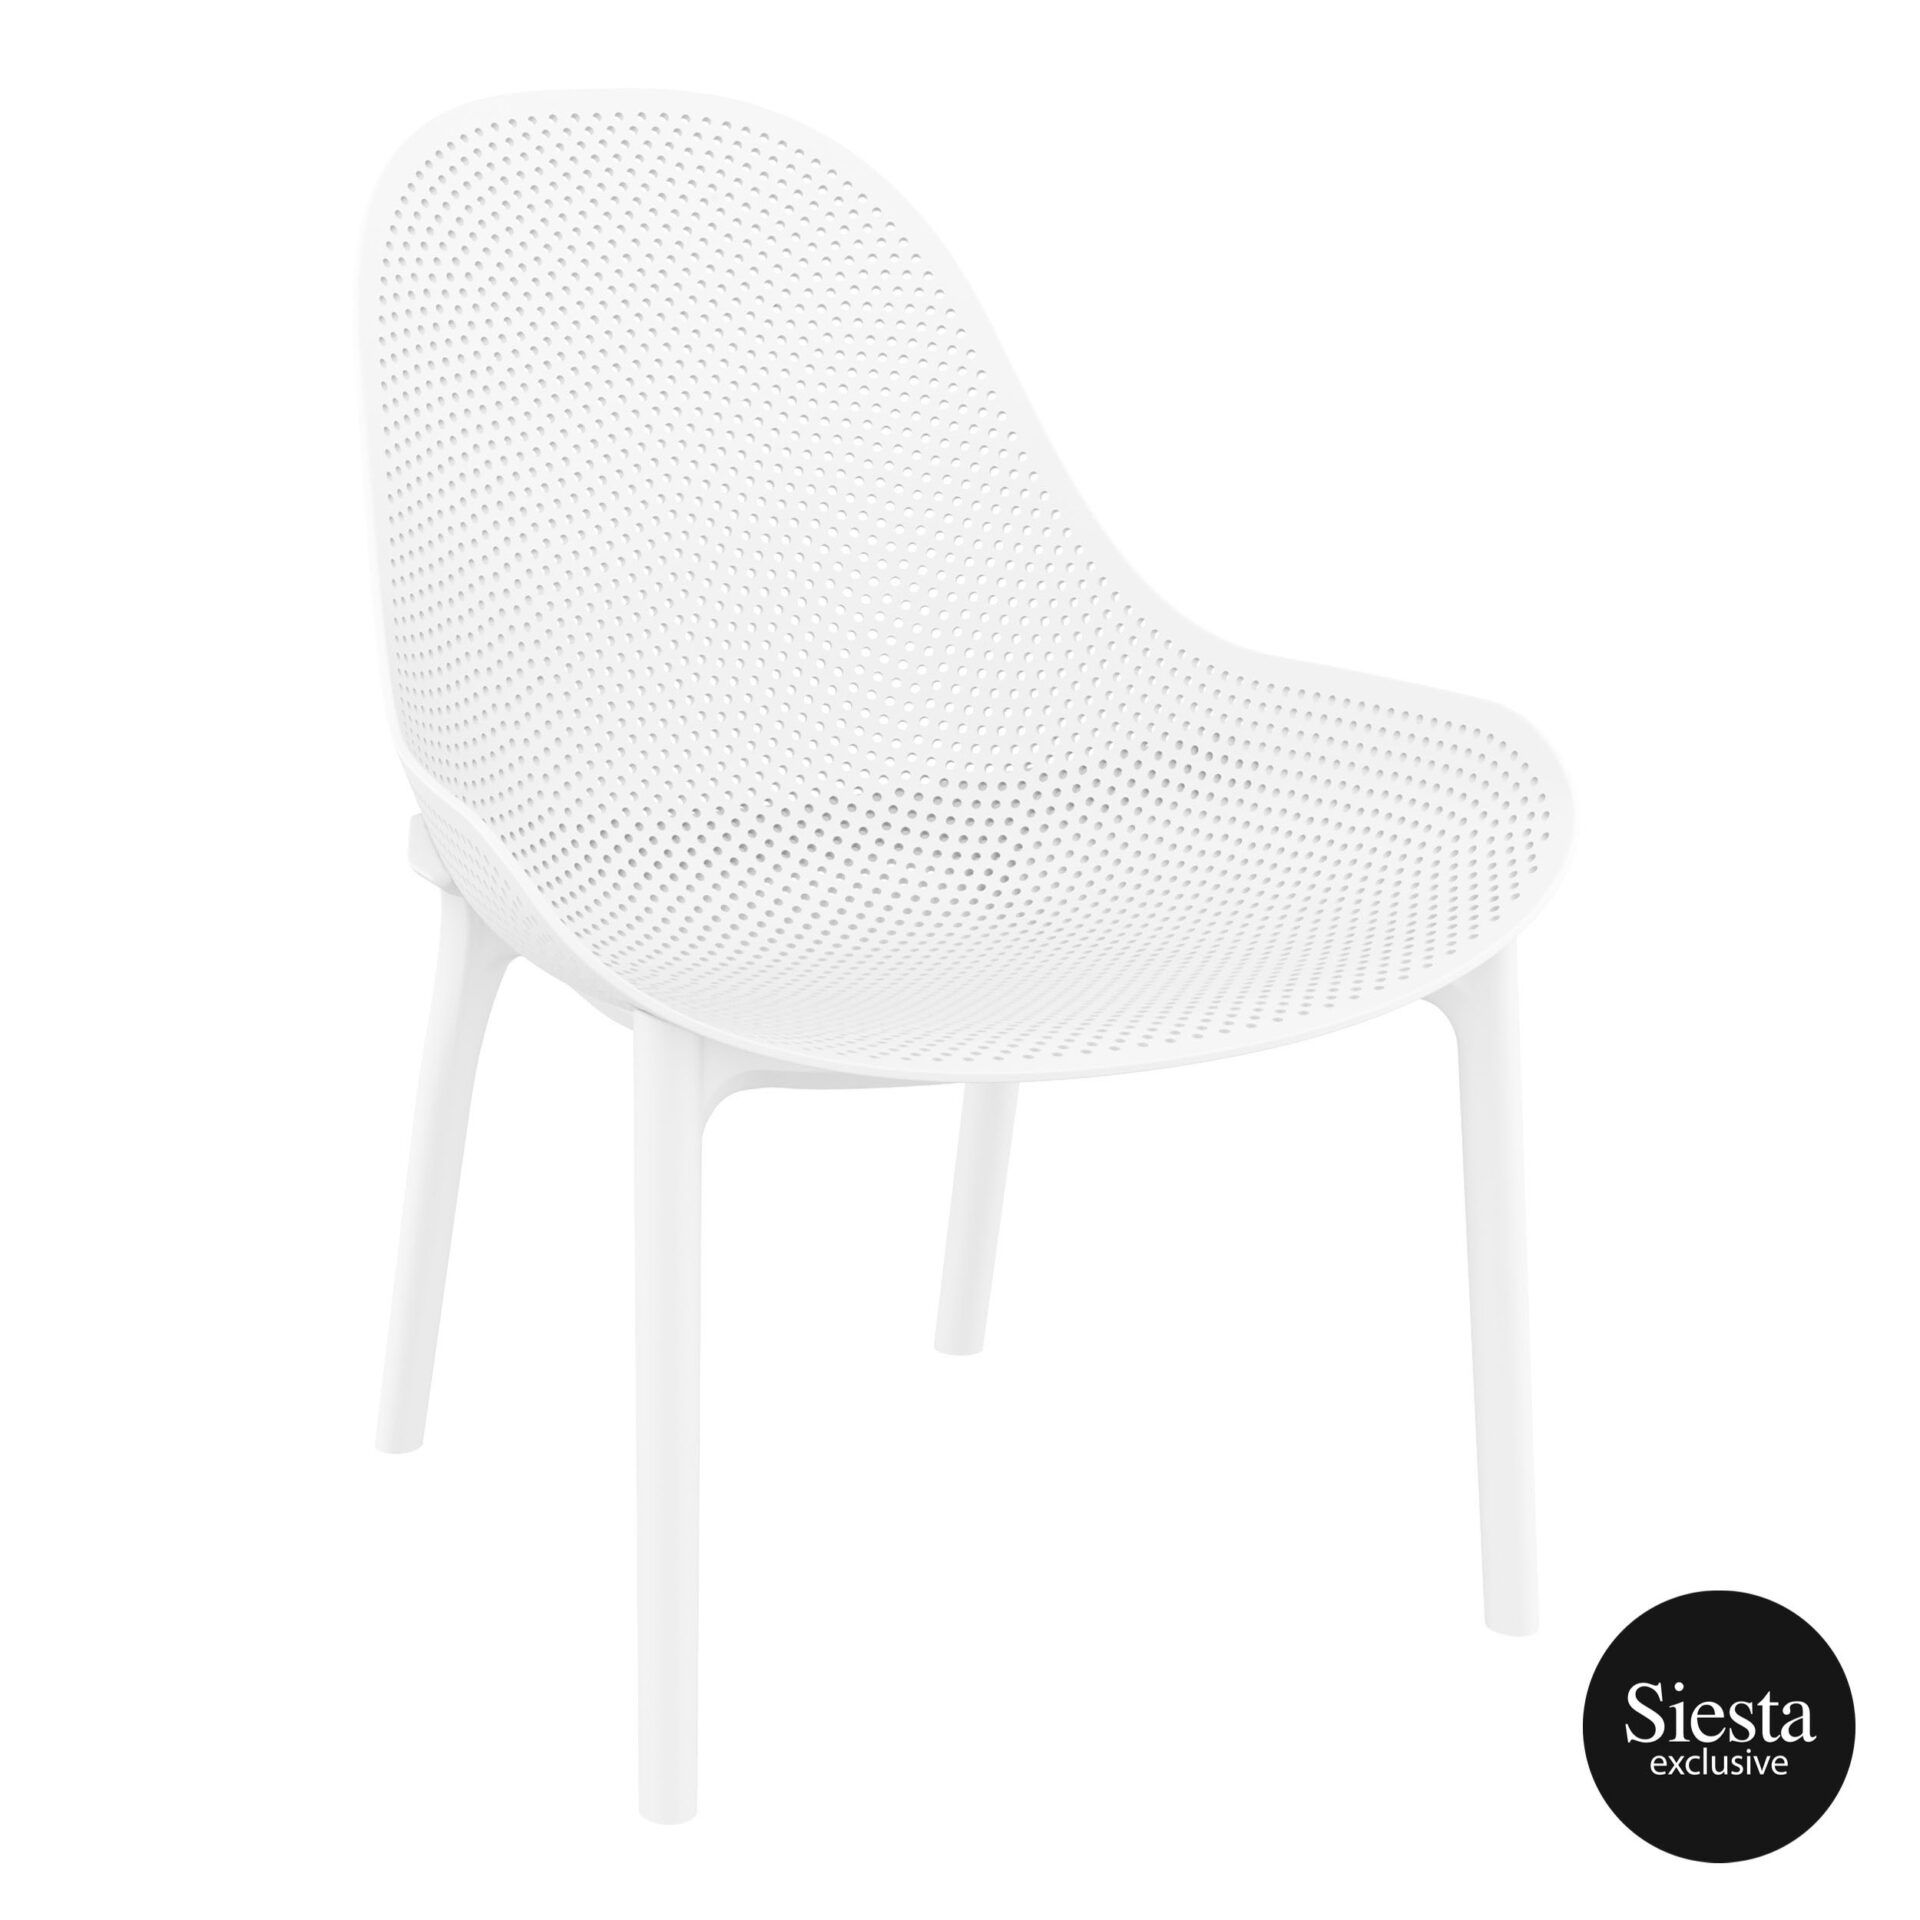 Outdoor Seating Polypropylene Sky Lounge white front side